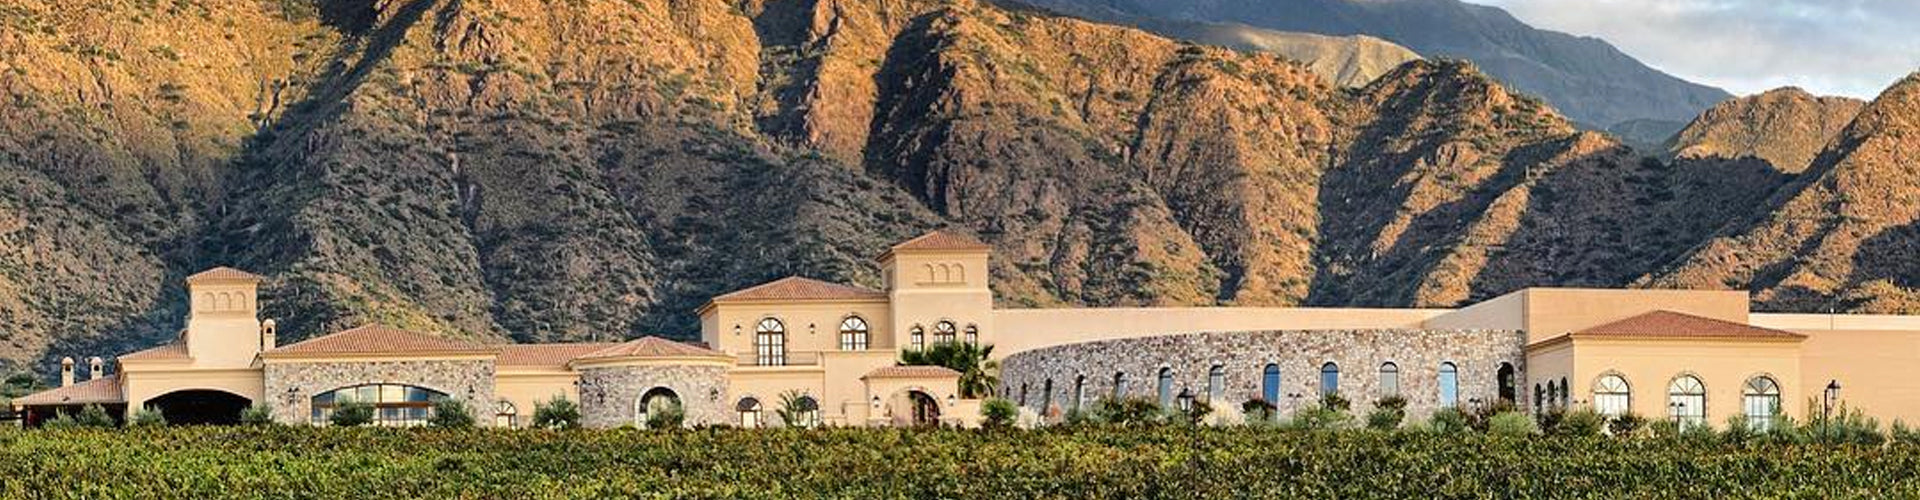 Piattelli Vineyards Cafayate in Argentina